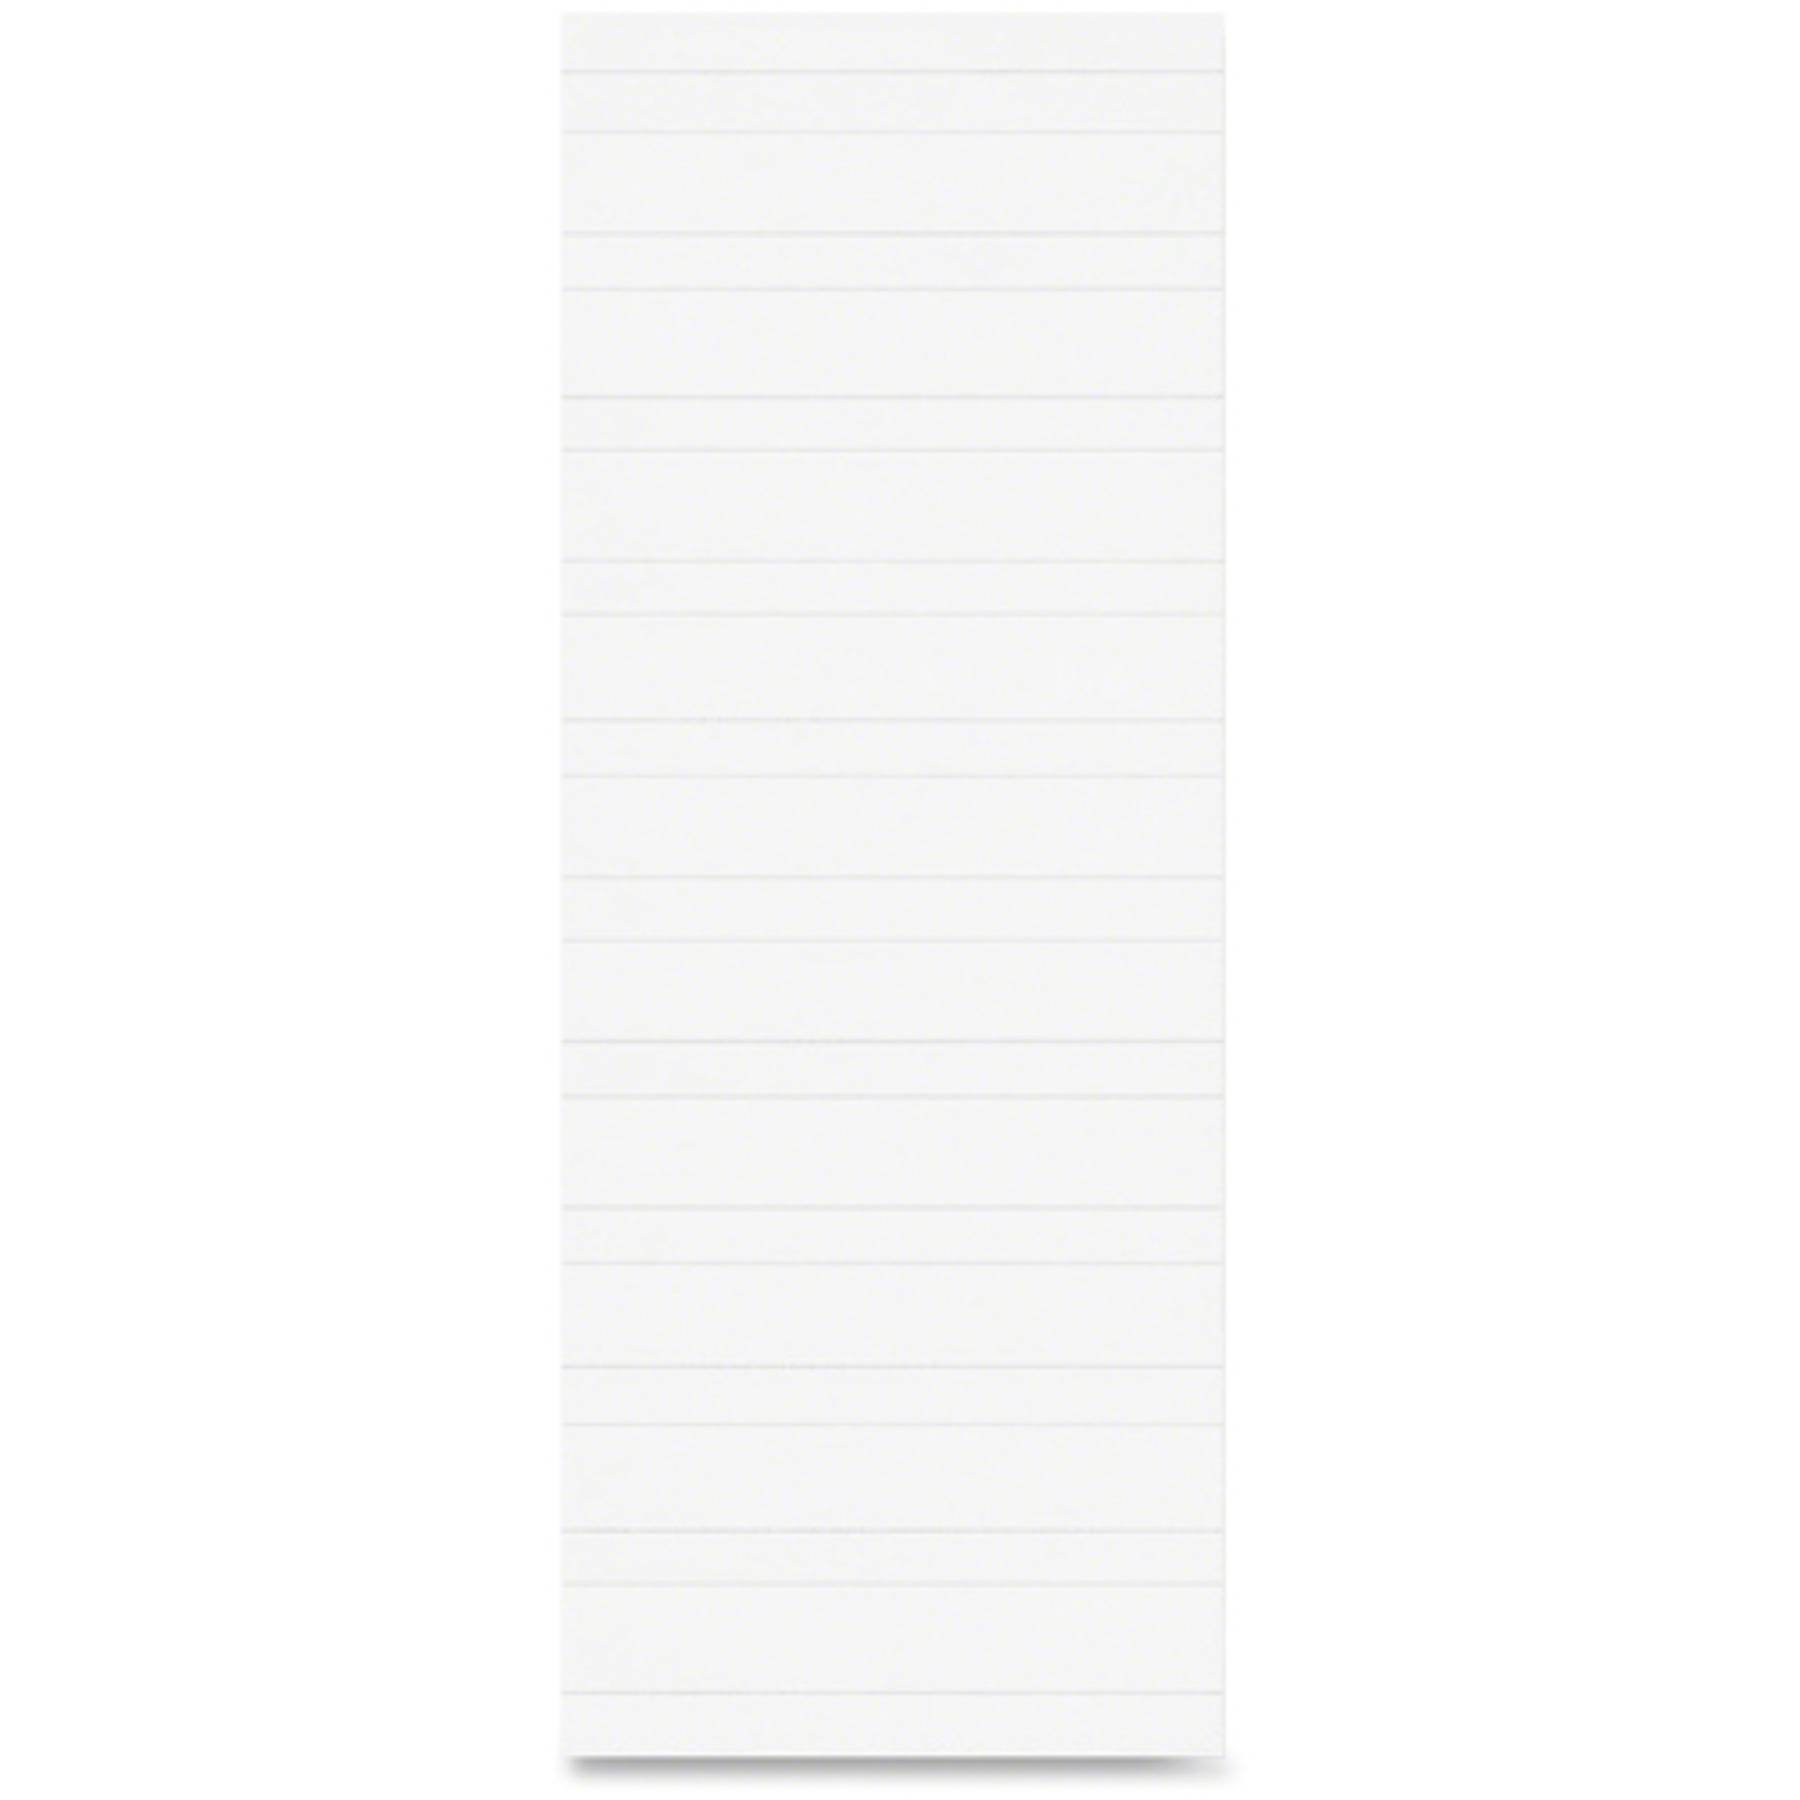 Template For Hanging File Folder Tabs 15 Cut